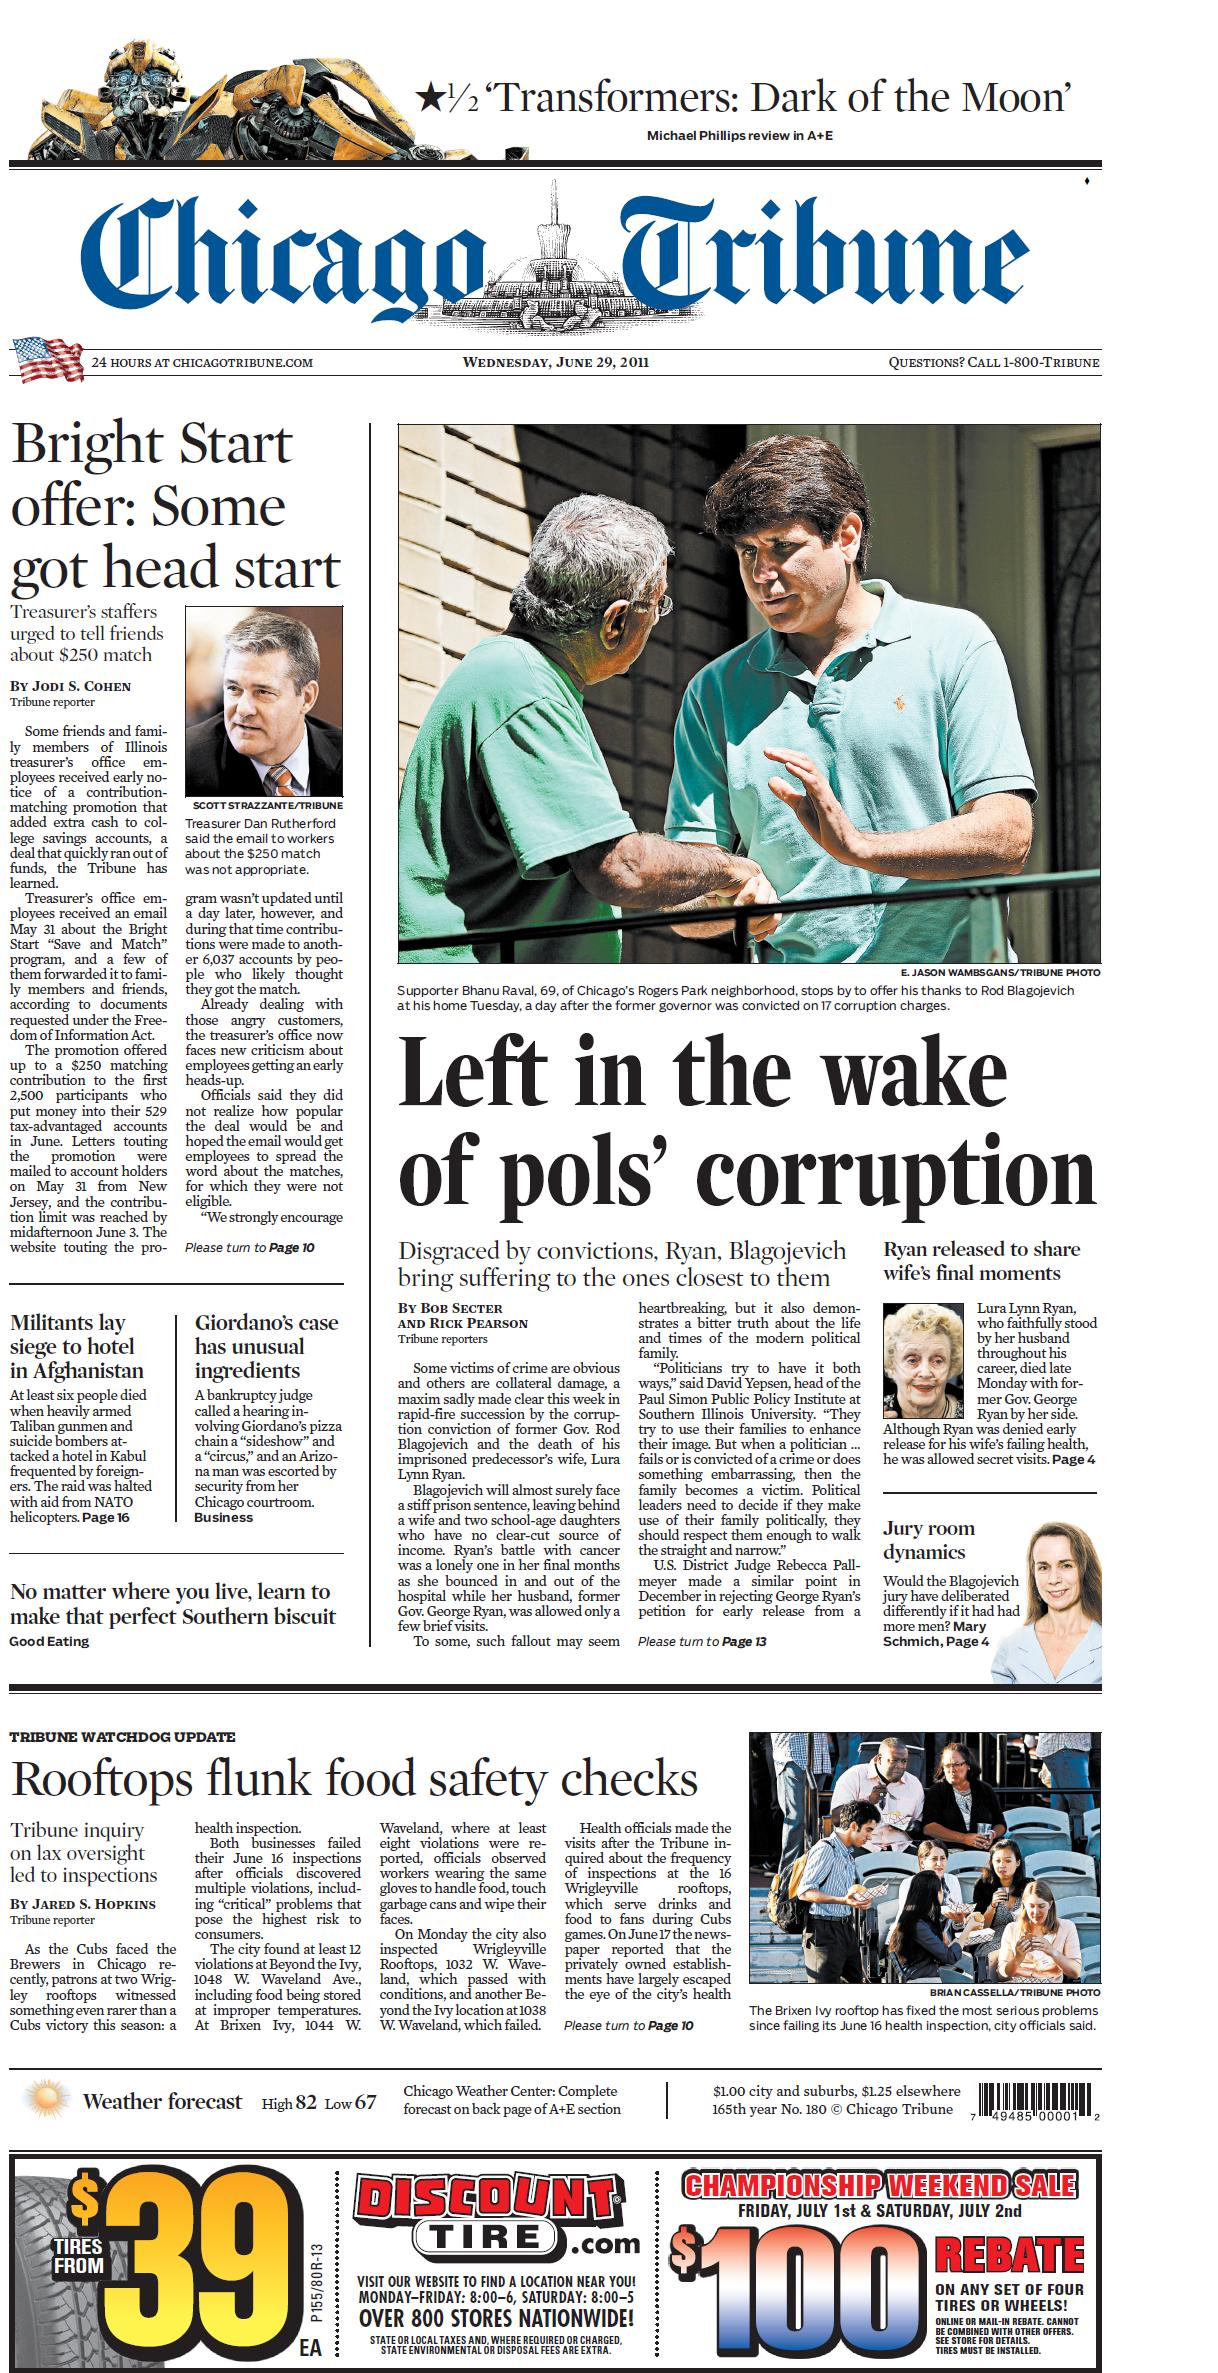 CHICAGO TRIBUNE 29 JUNE 2011